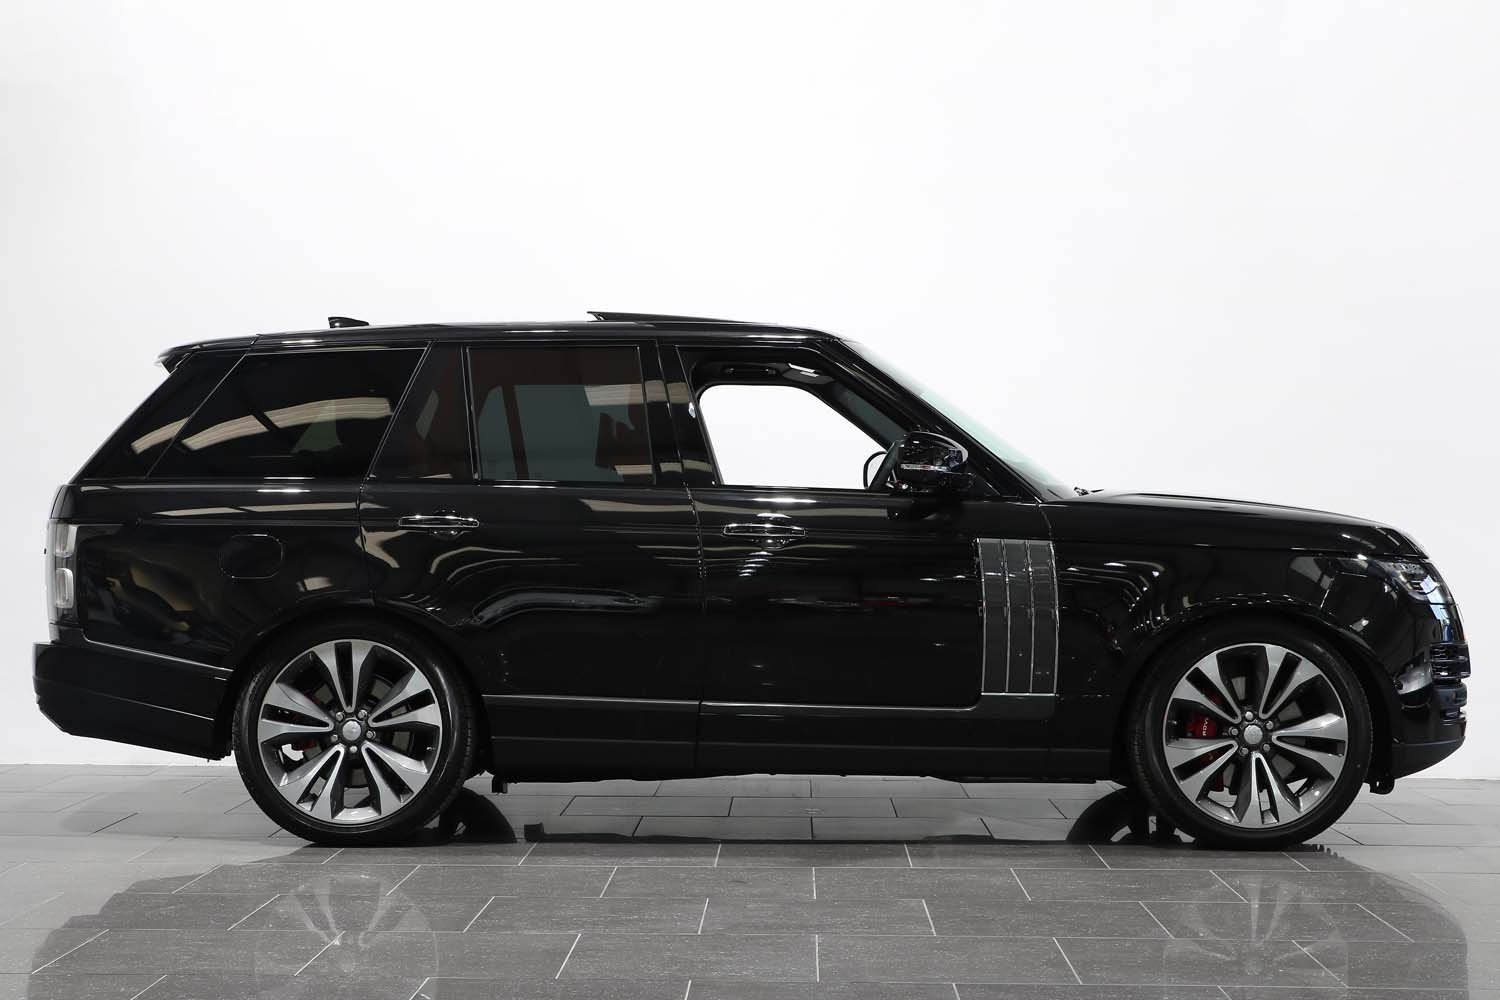 2019 19 RANGE ROVER 5.0 V8 SVAUTOBIOGRAPHY DYNAMIC AUTO  For Sale (picture 2 of 6)